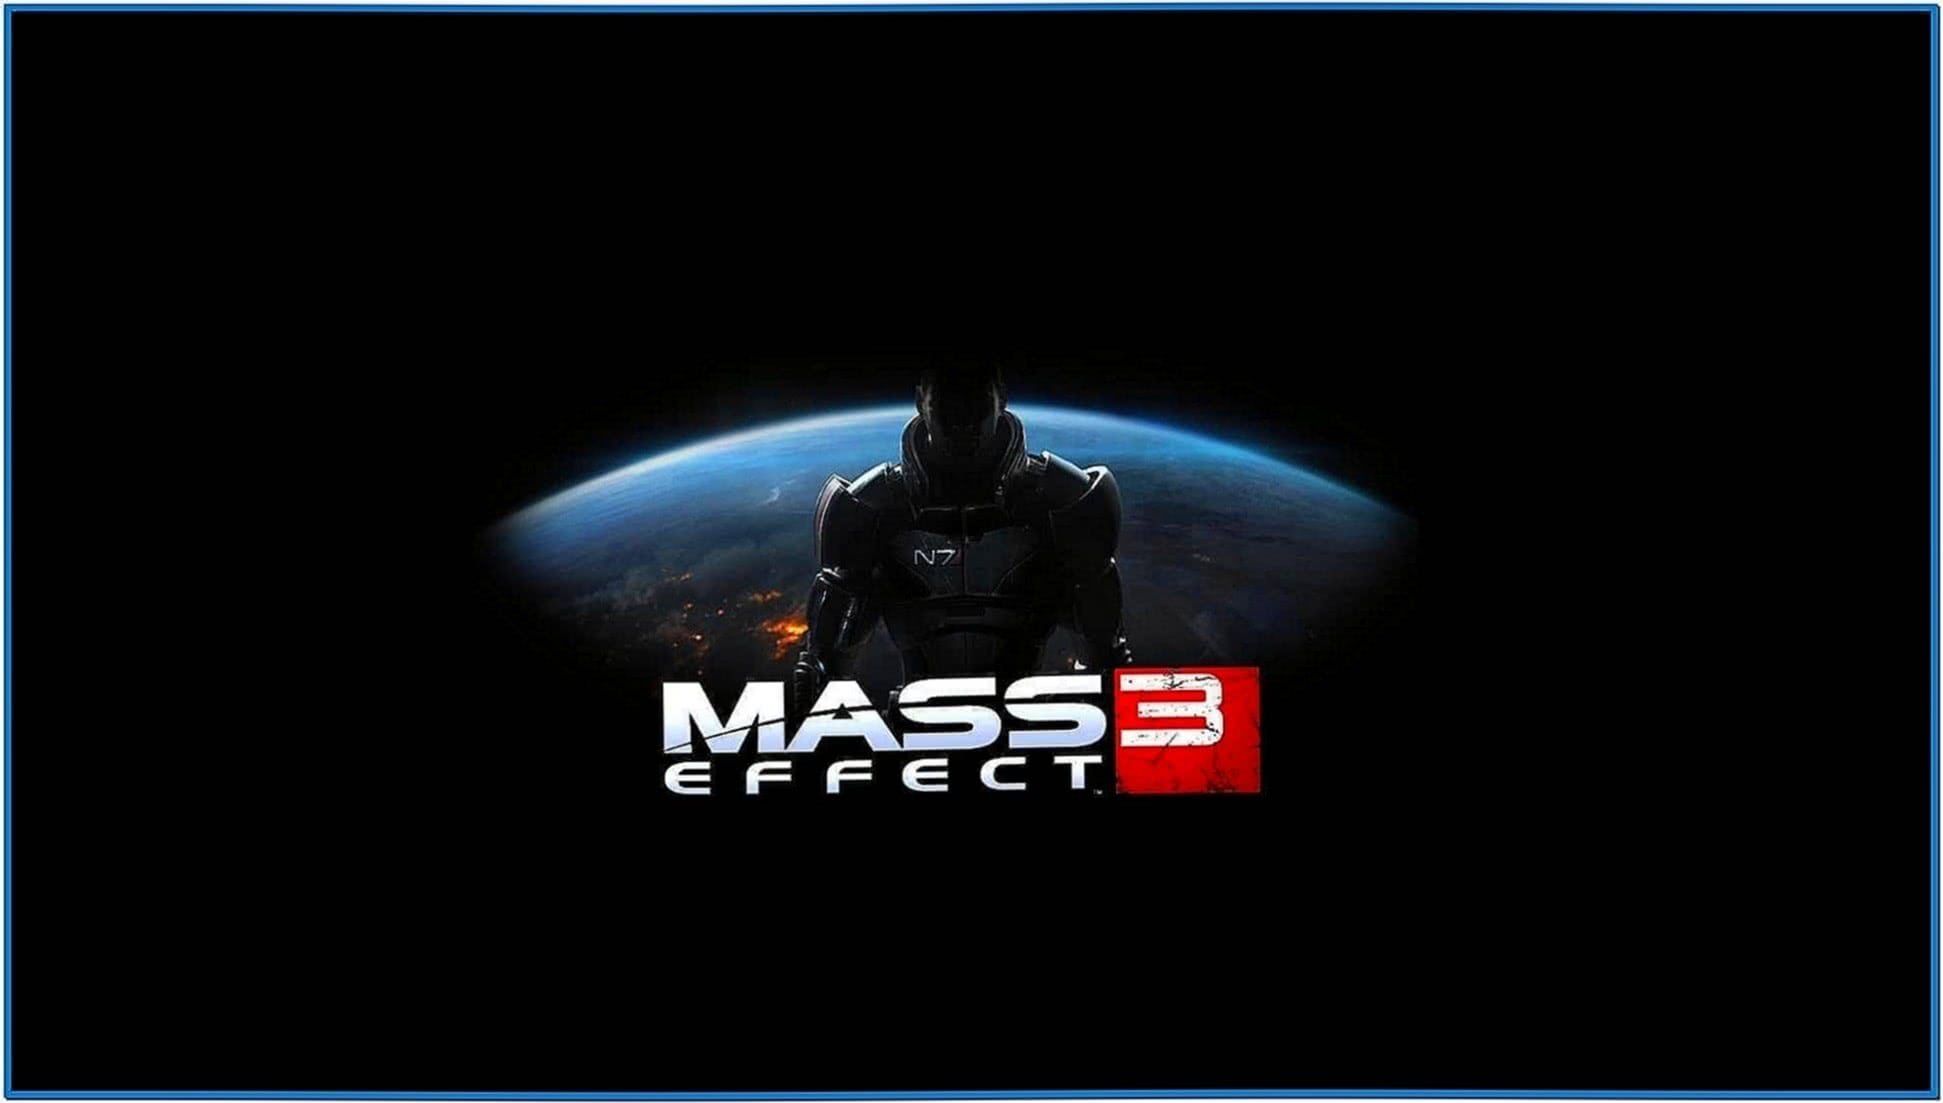 Mass Effect 3 Screensaver Windows 7